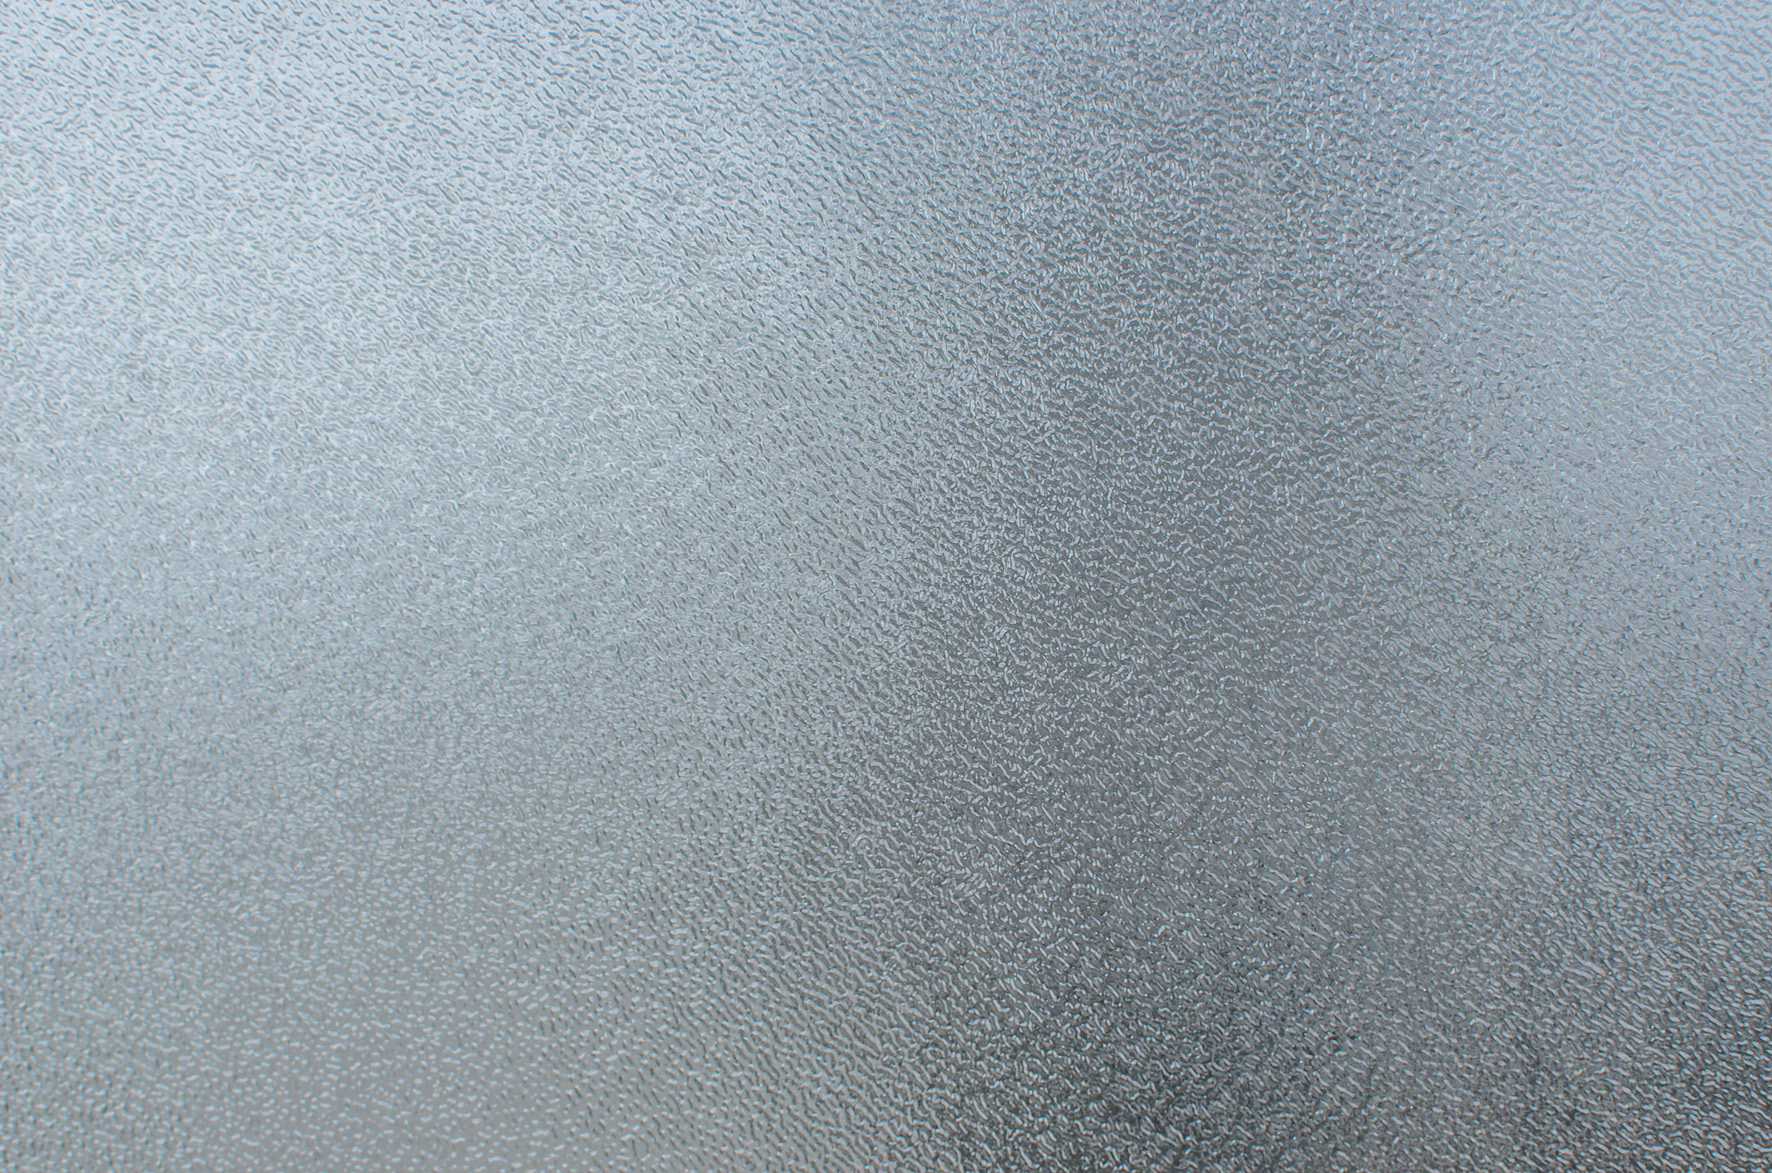 mat glass texture